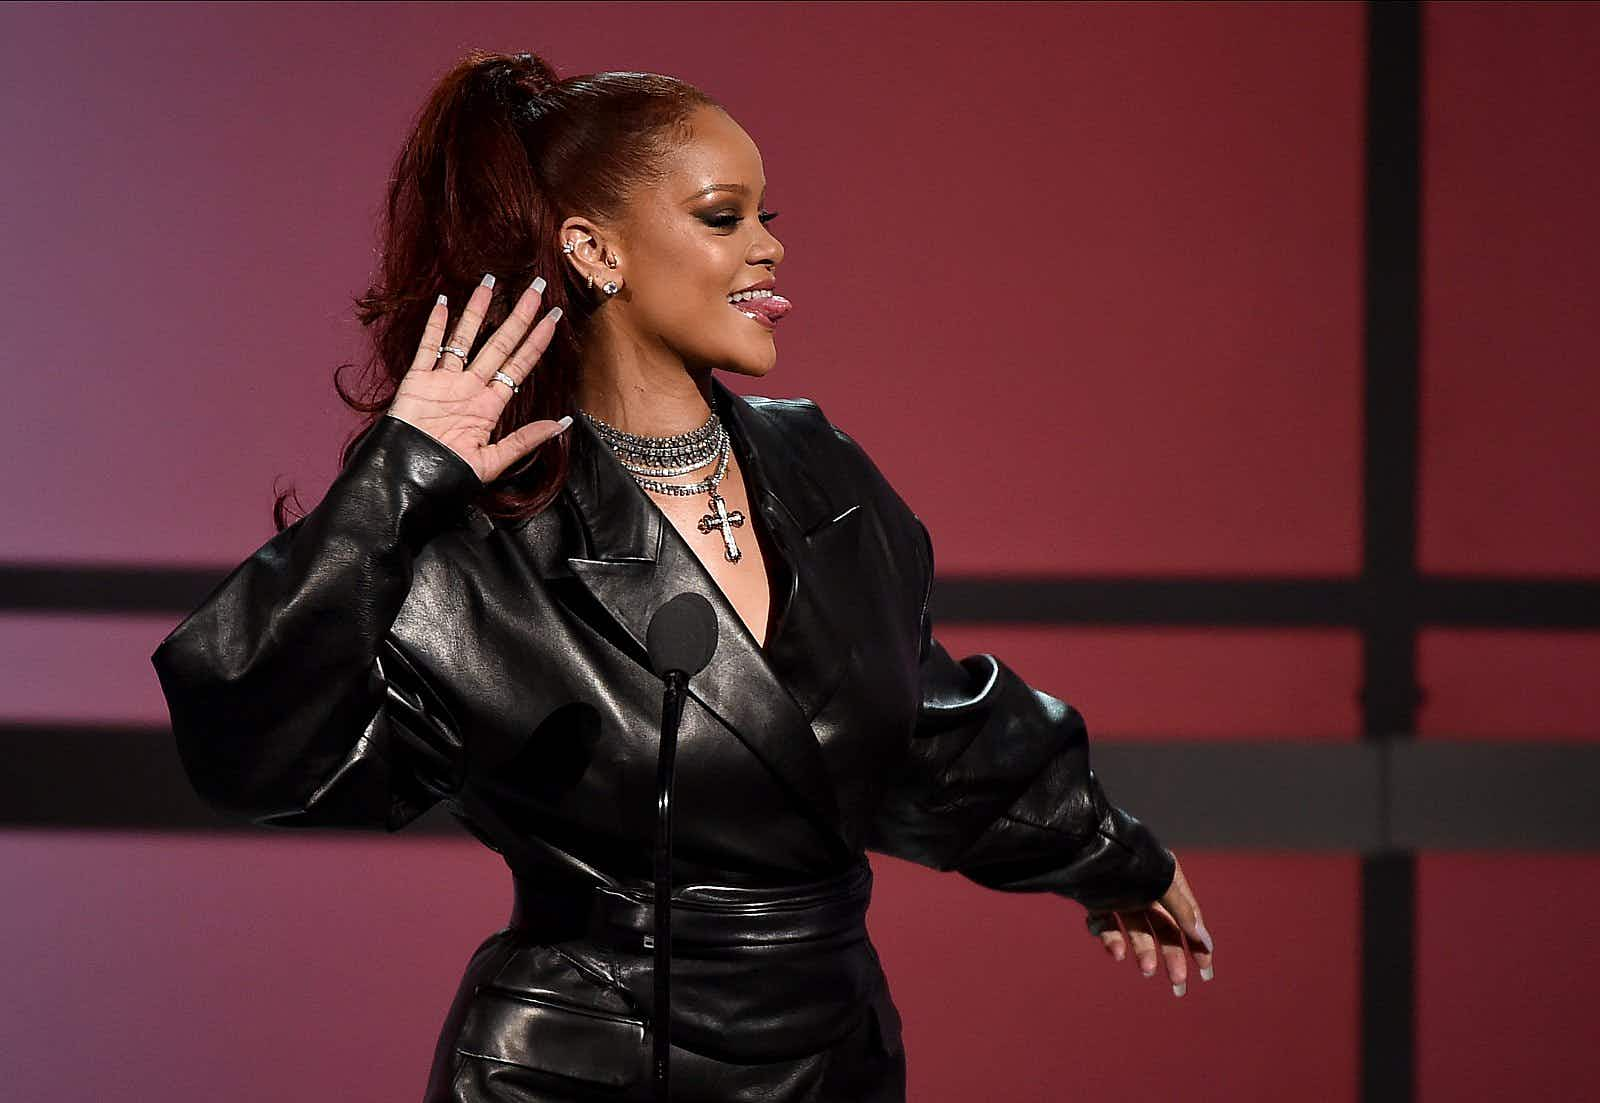 Rihanna at the BET Awards Show at the Microsoft Theater in Los Angeles, USA on 23 June 2019; she wears a black leather coat, a sparkly silver necklace and is playfully sticking her tongue out.